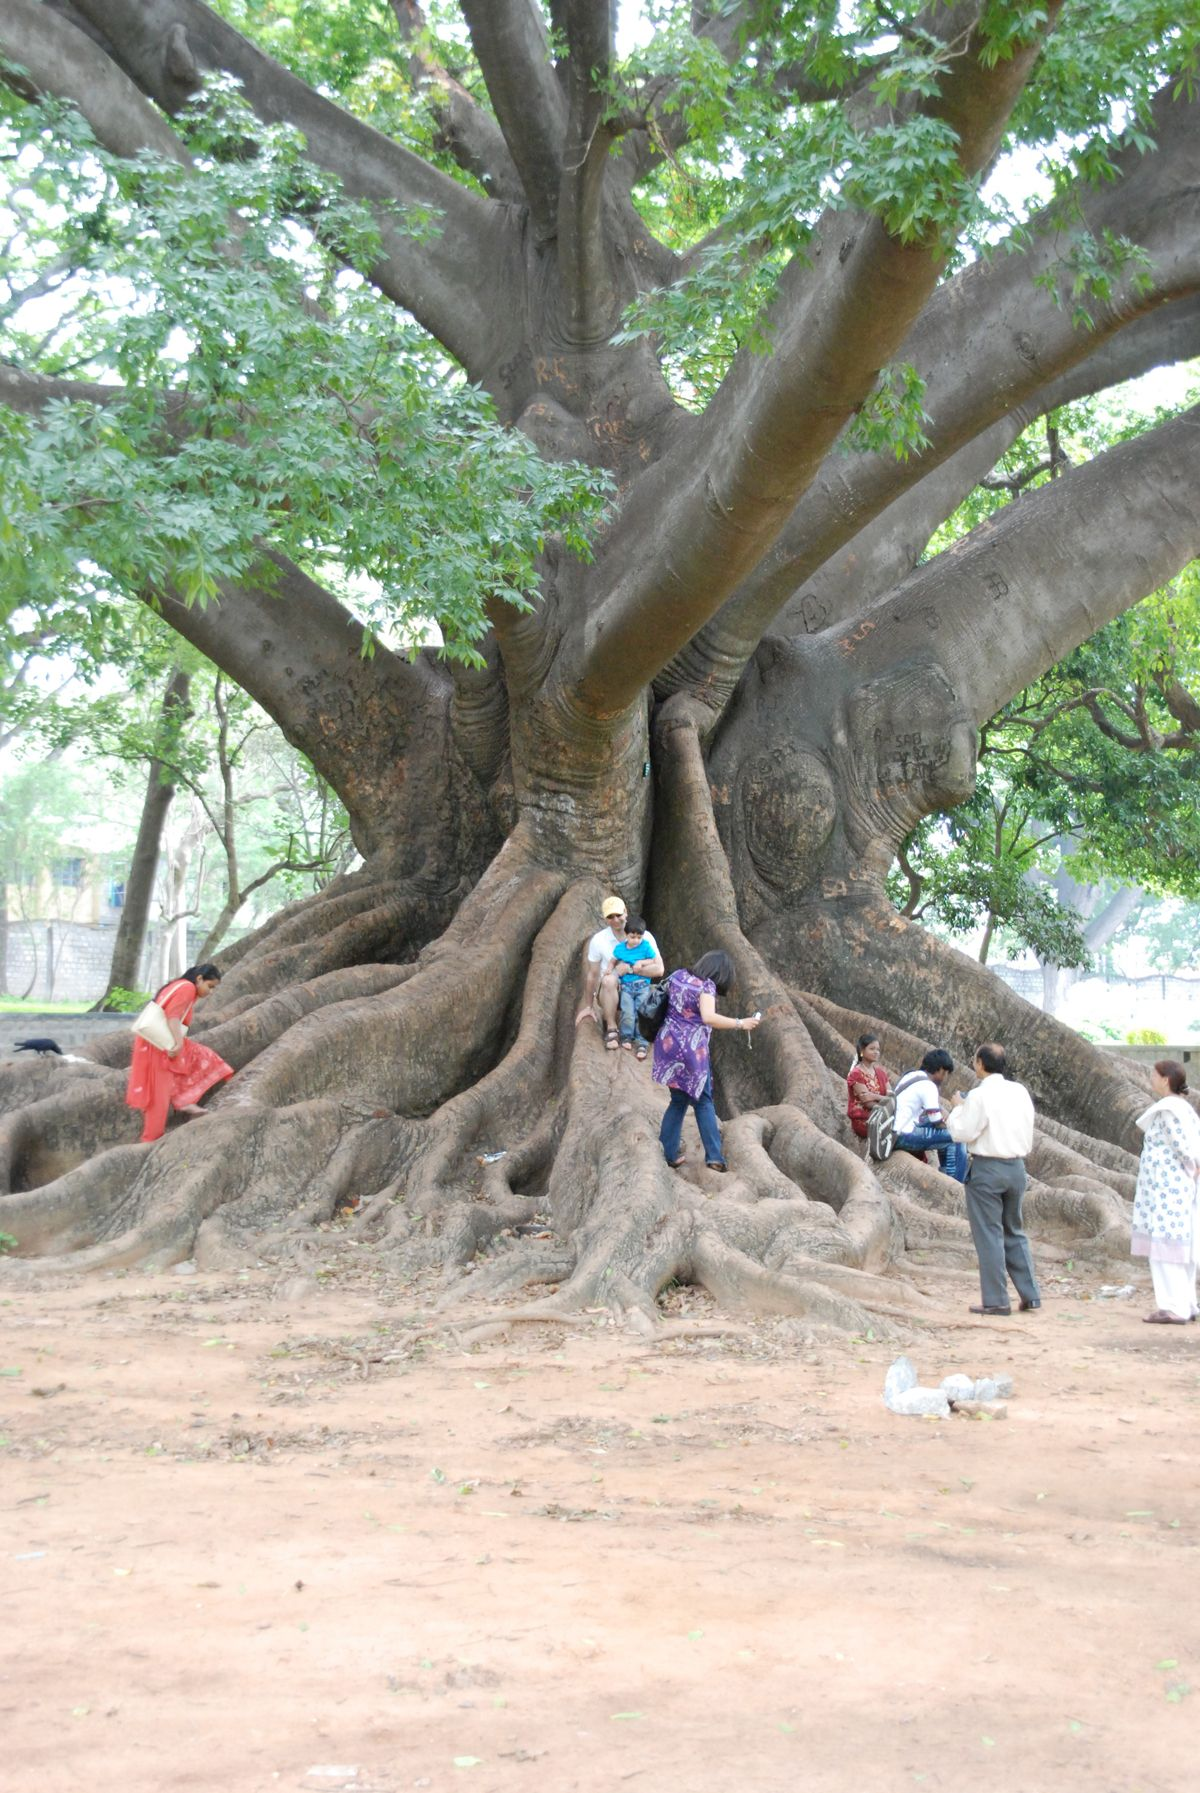 Biggest Tree Ive Ever Seen  Lal Bagh Gardens, Bangalore